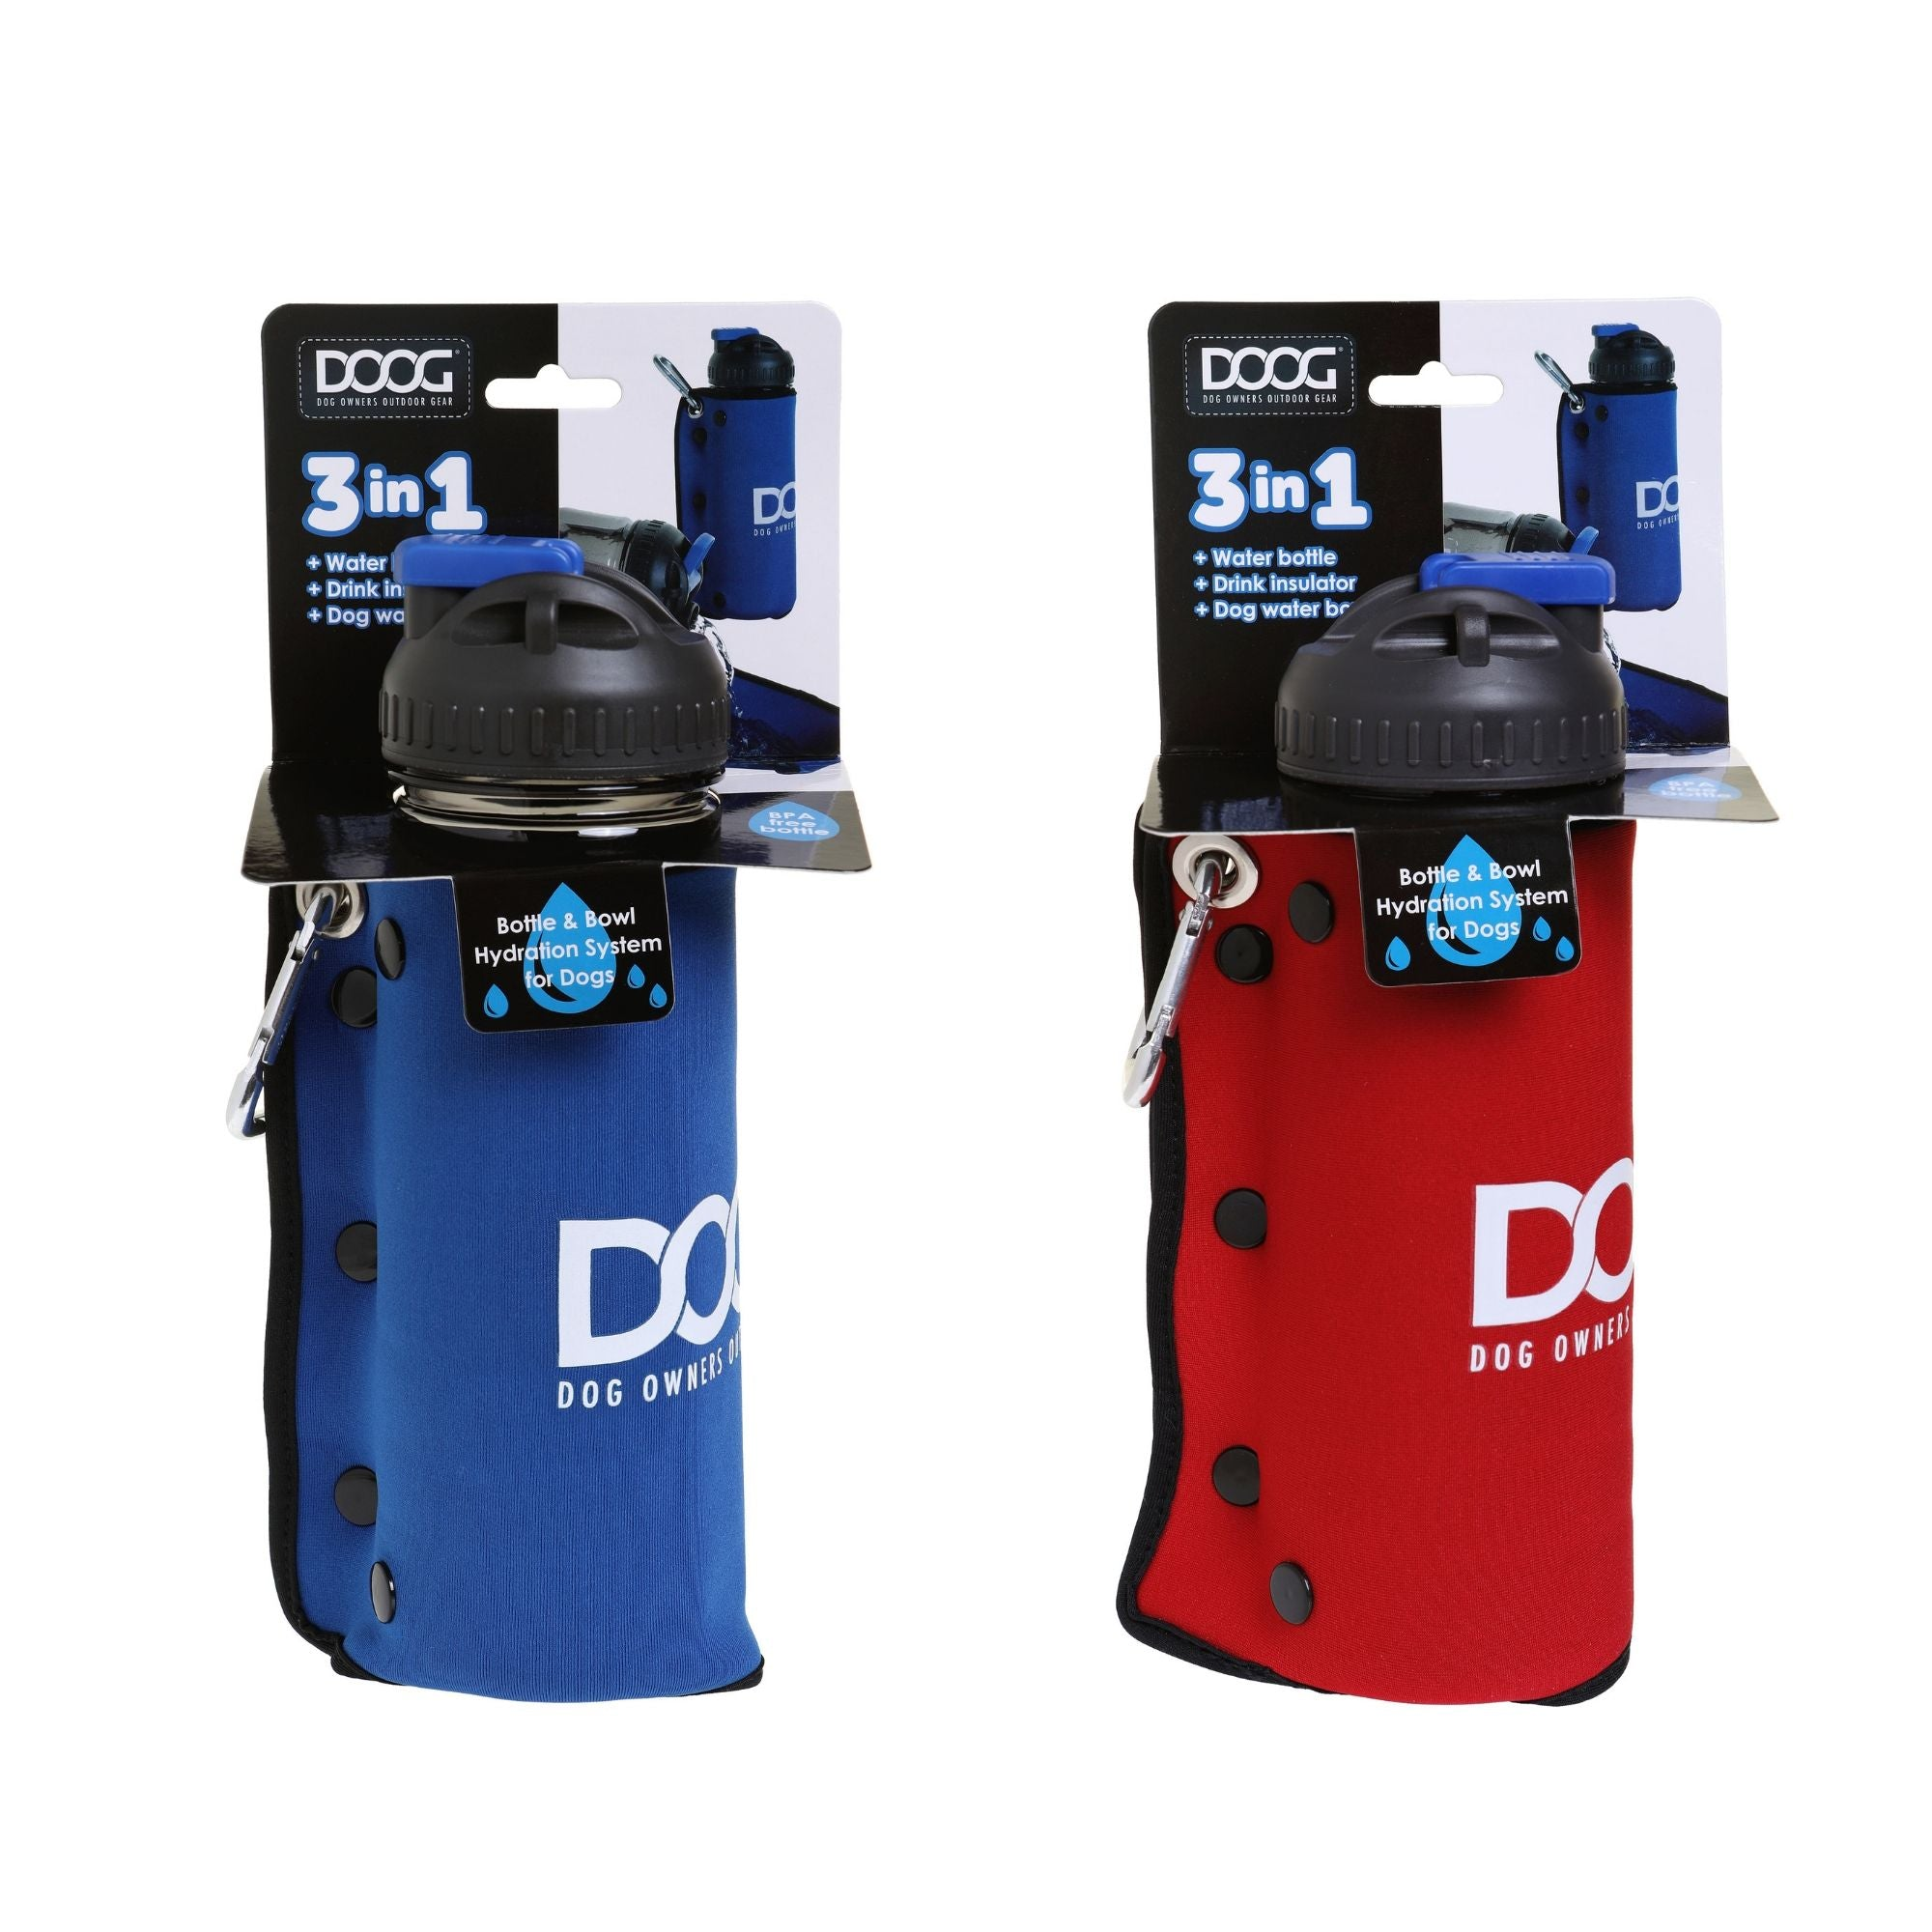 DOOG 3 in 1 Water Bottle & Bowl For Dogs | Barks & Bunnies